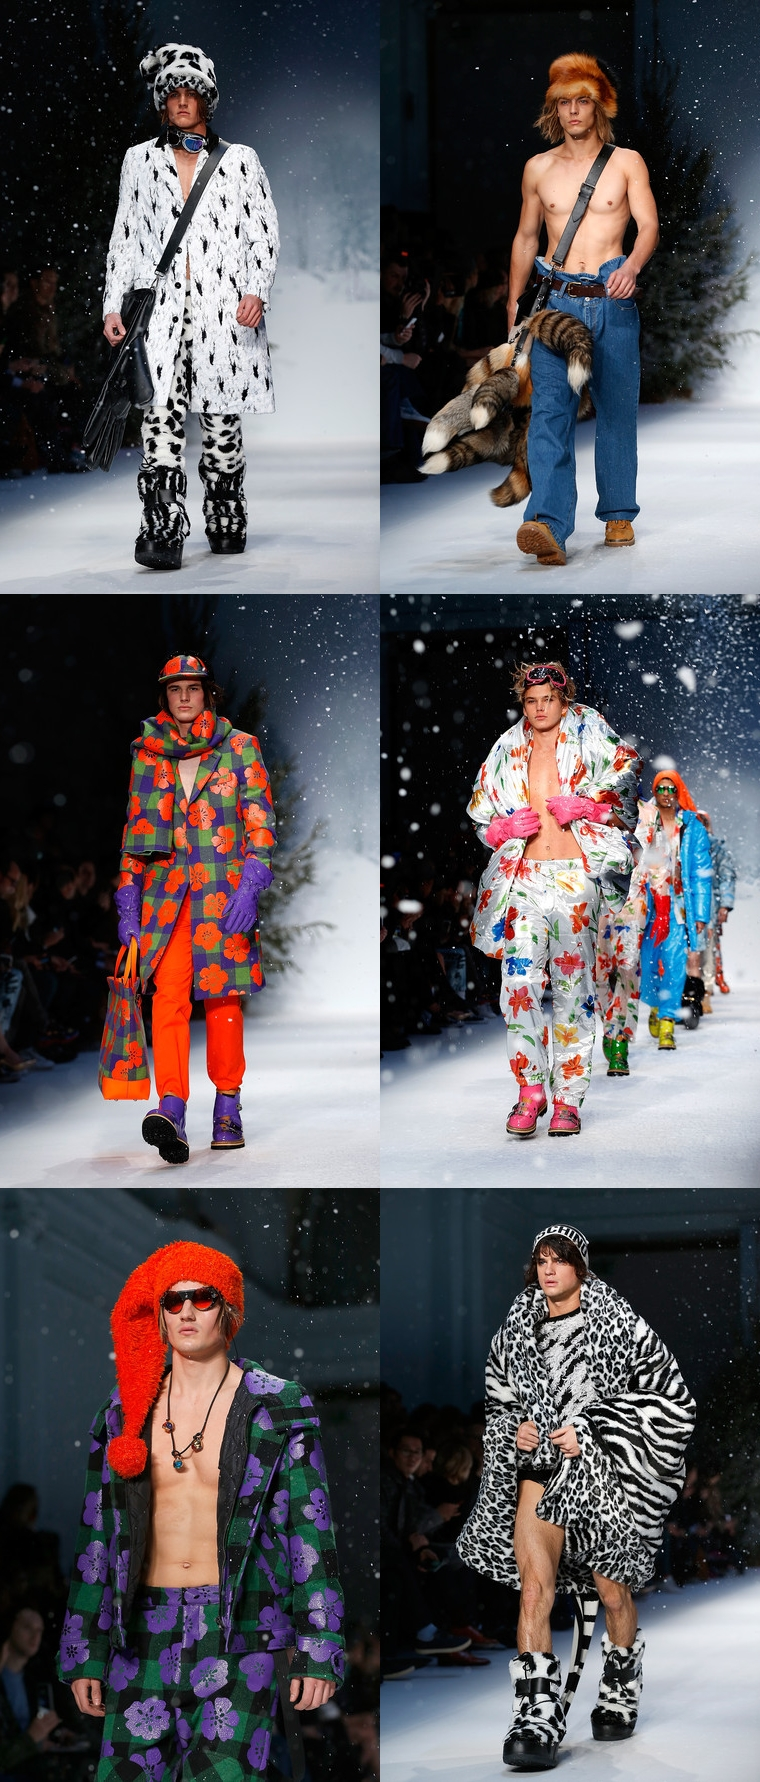 Moschino+Runway+London+Collections+Men+AW15+alex cursino, fashion blogger, moda sem censura, tendencia masculina, estilo masculino, moda masculina, fashion blogger, blogger, 2